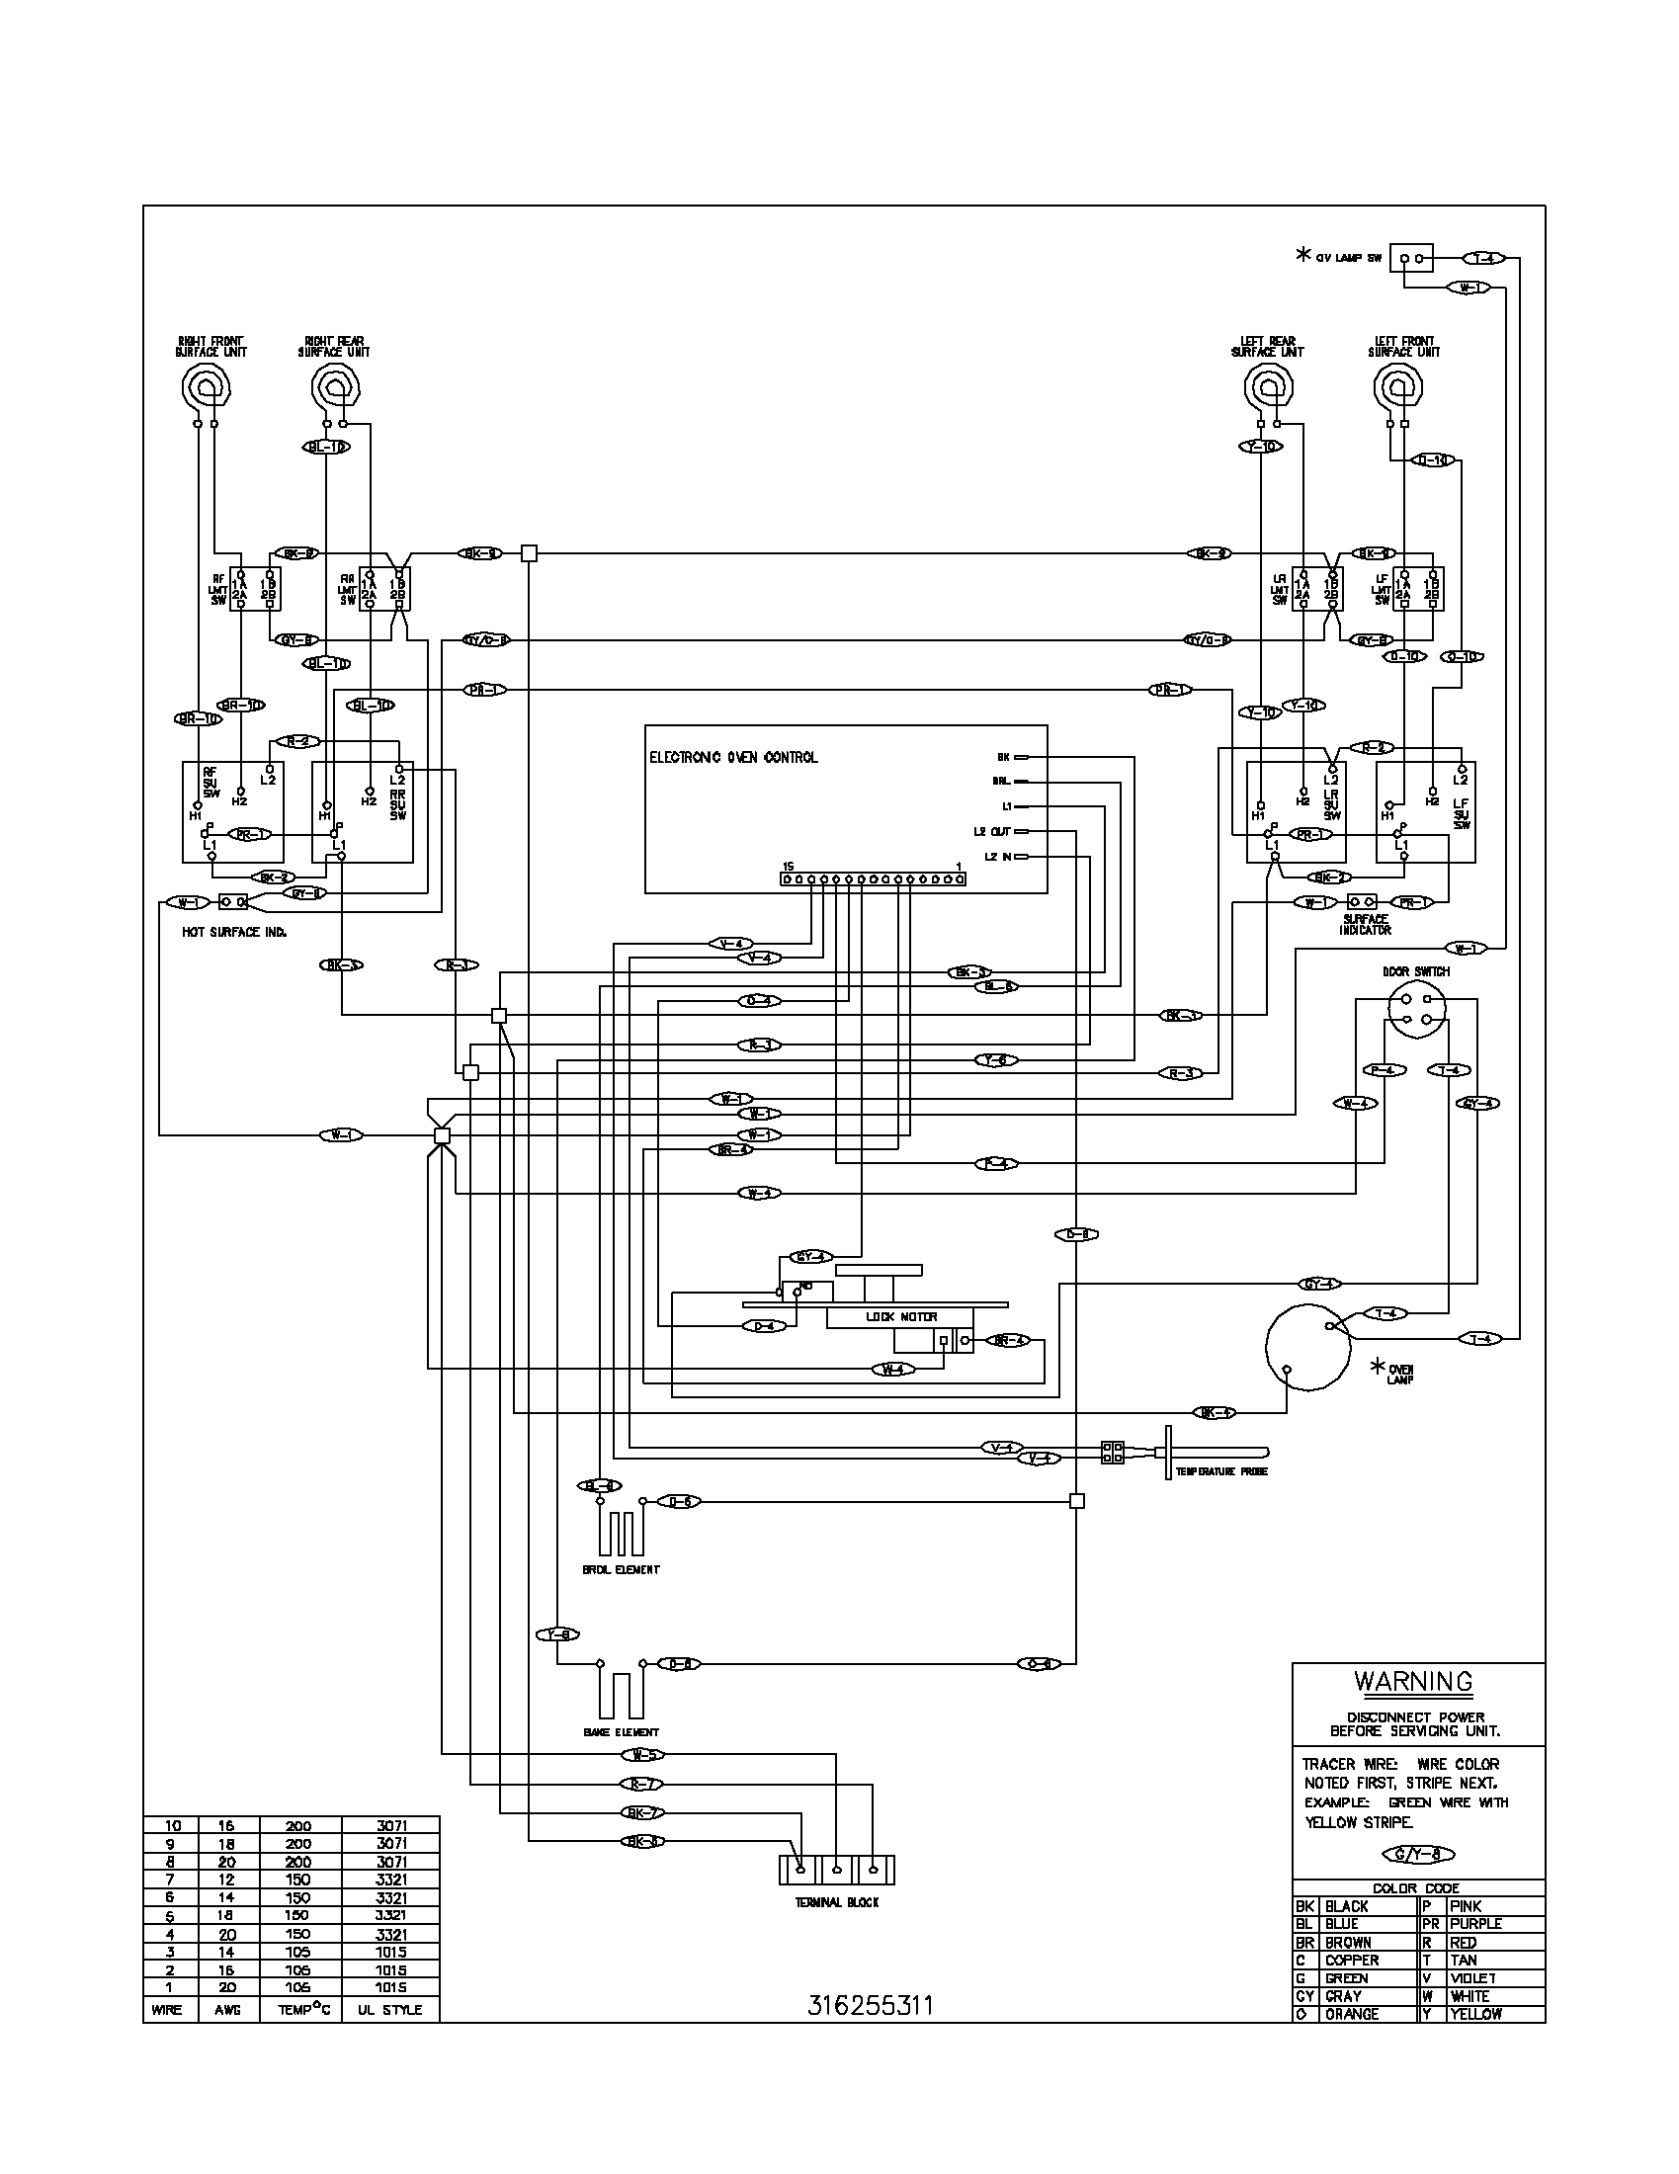 electric range wiring diagram electric wiring diagrams online 30 electric stove top range image about wiring diagram